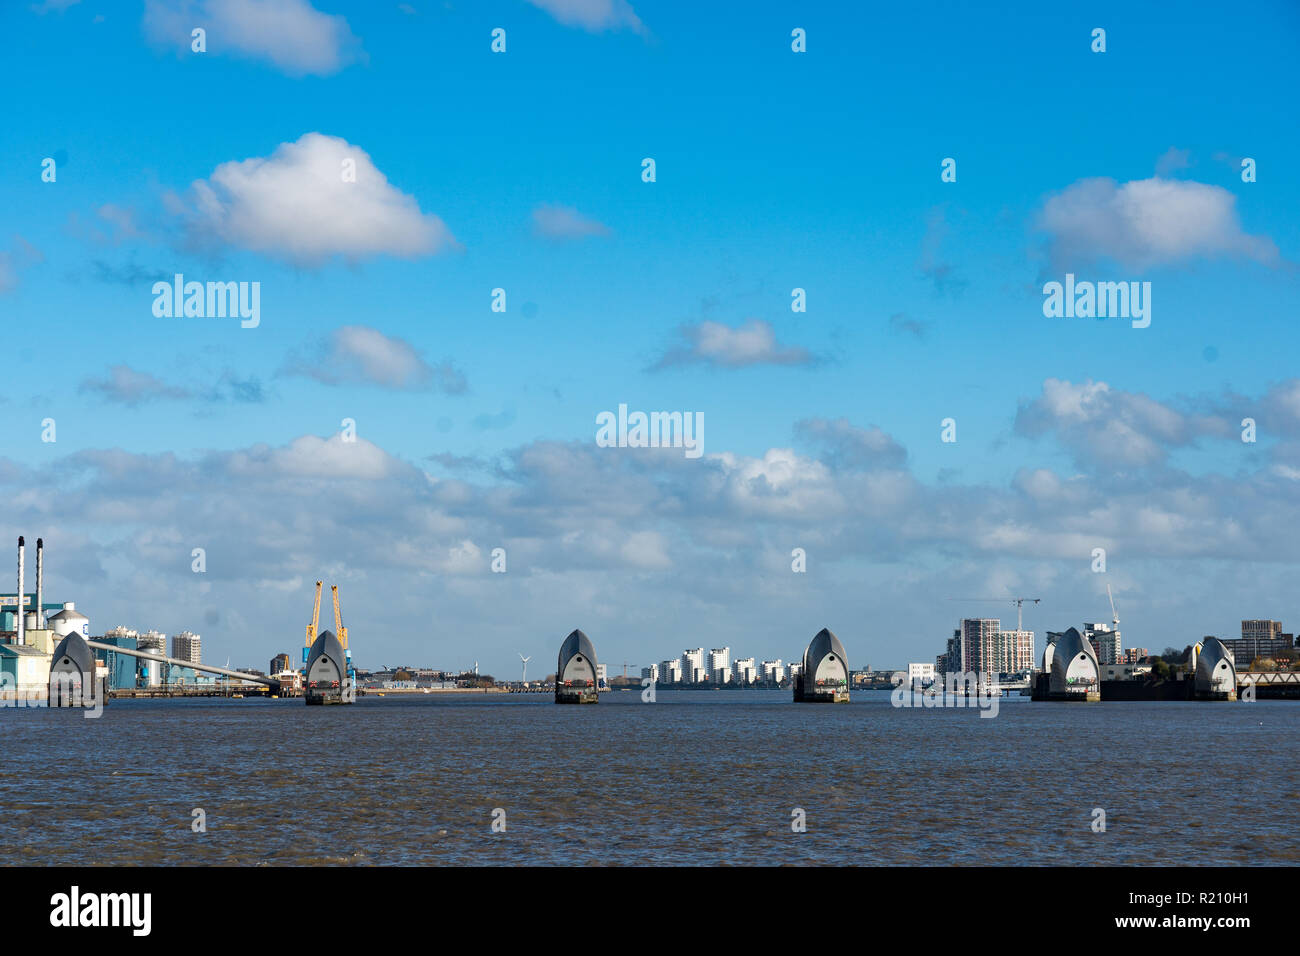 The Thames Barrier. From the Open City Thames Architecture Tour East. Photo date: Saturday, November 10, 2018. Photo: Roger Garfield/Alamy Stock Photo